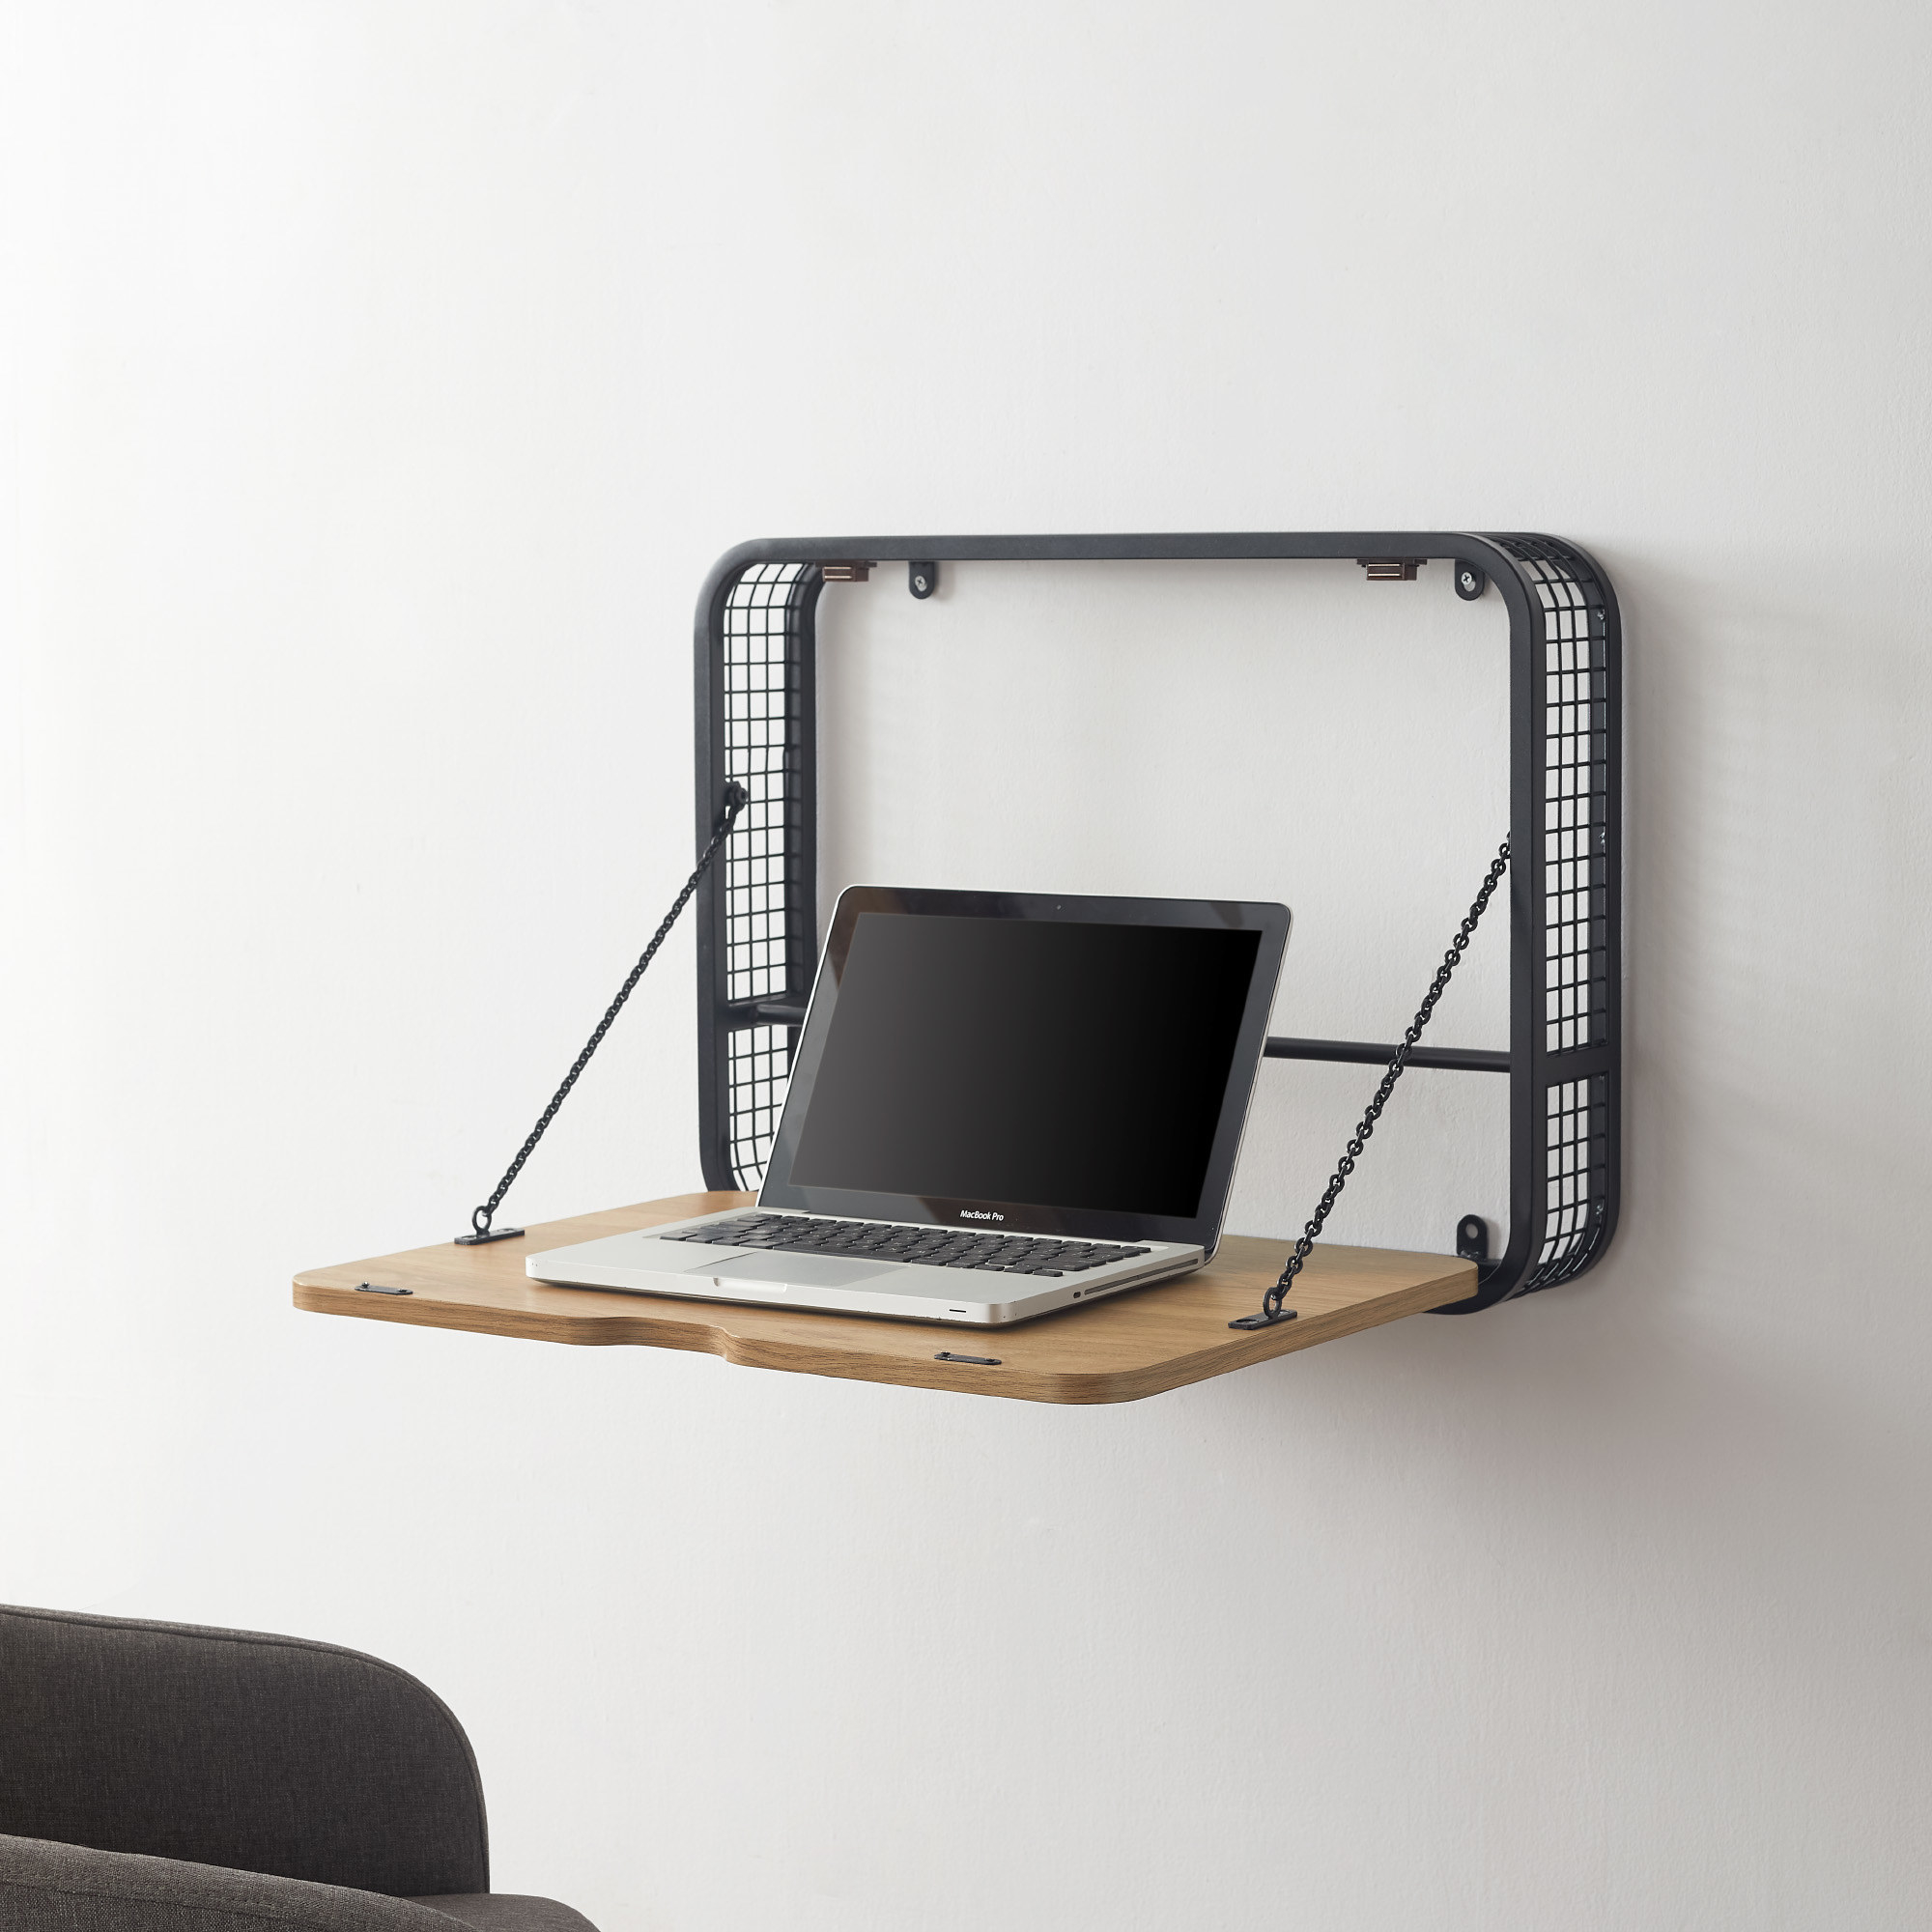 Metal square attached to the wall with a wood top pulled down with a laptop sitting on it